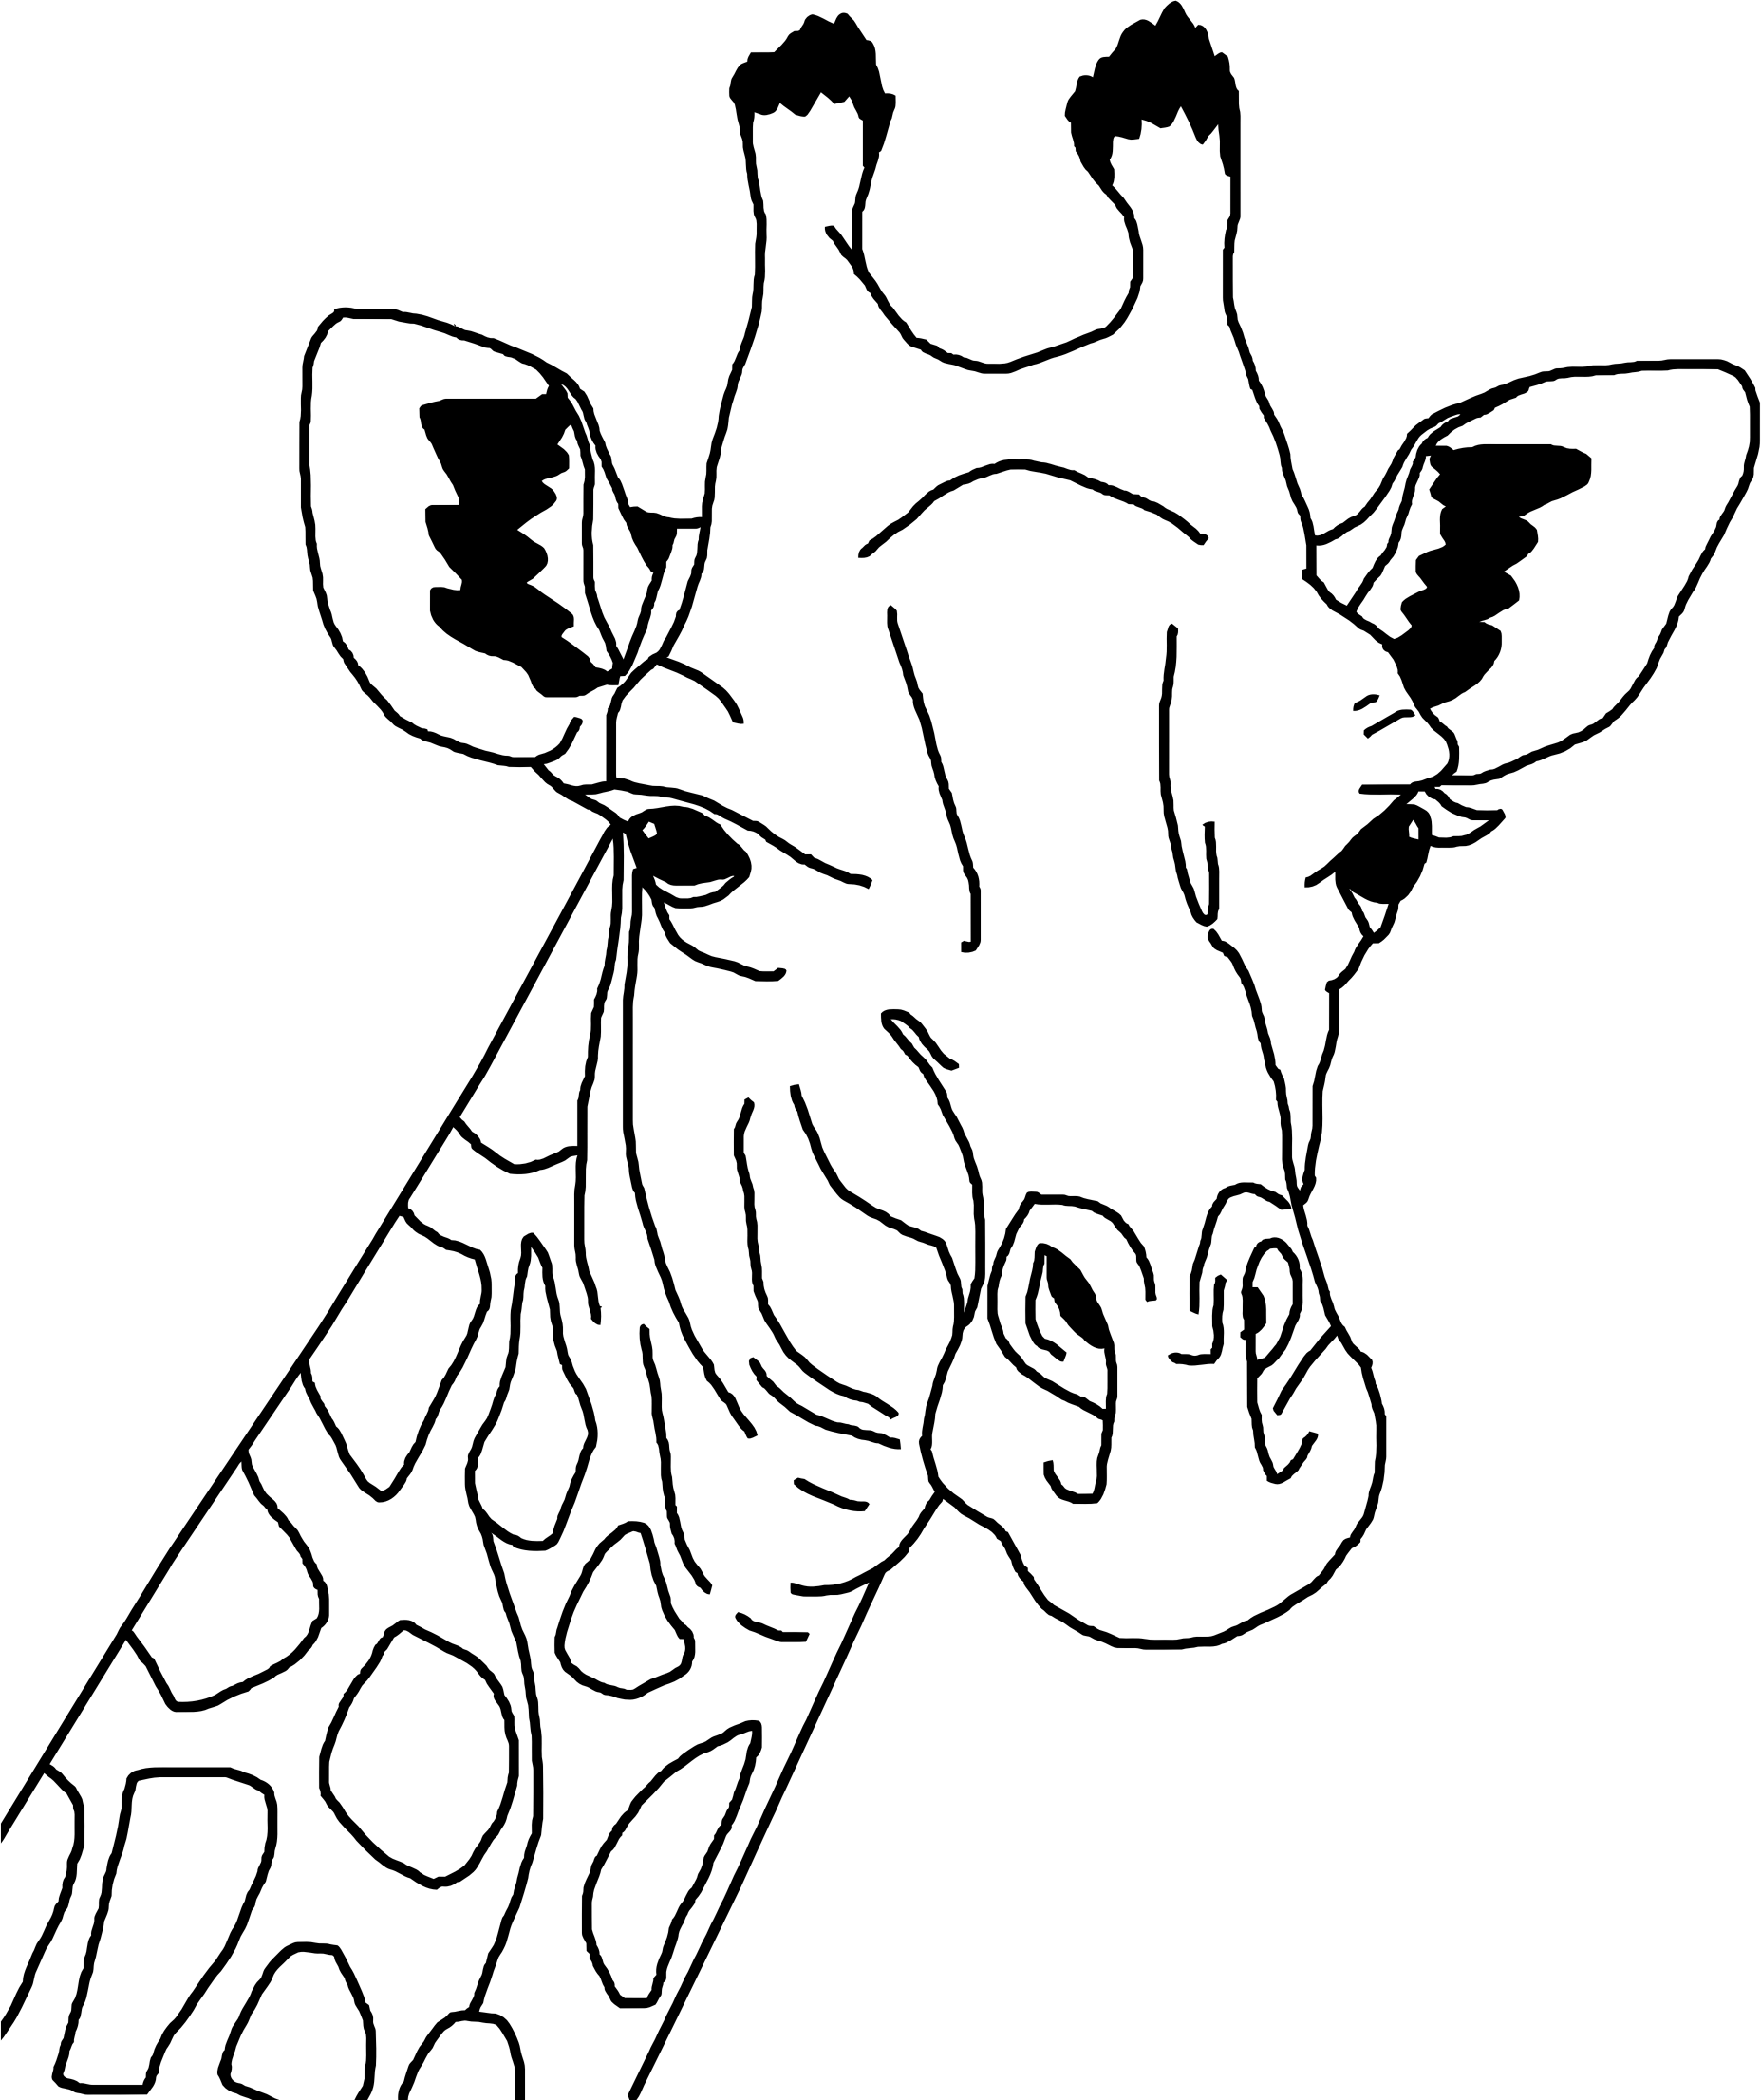 Giraffe Line Art by GDJ